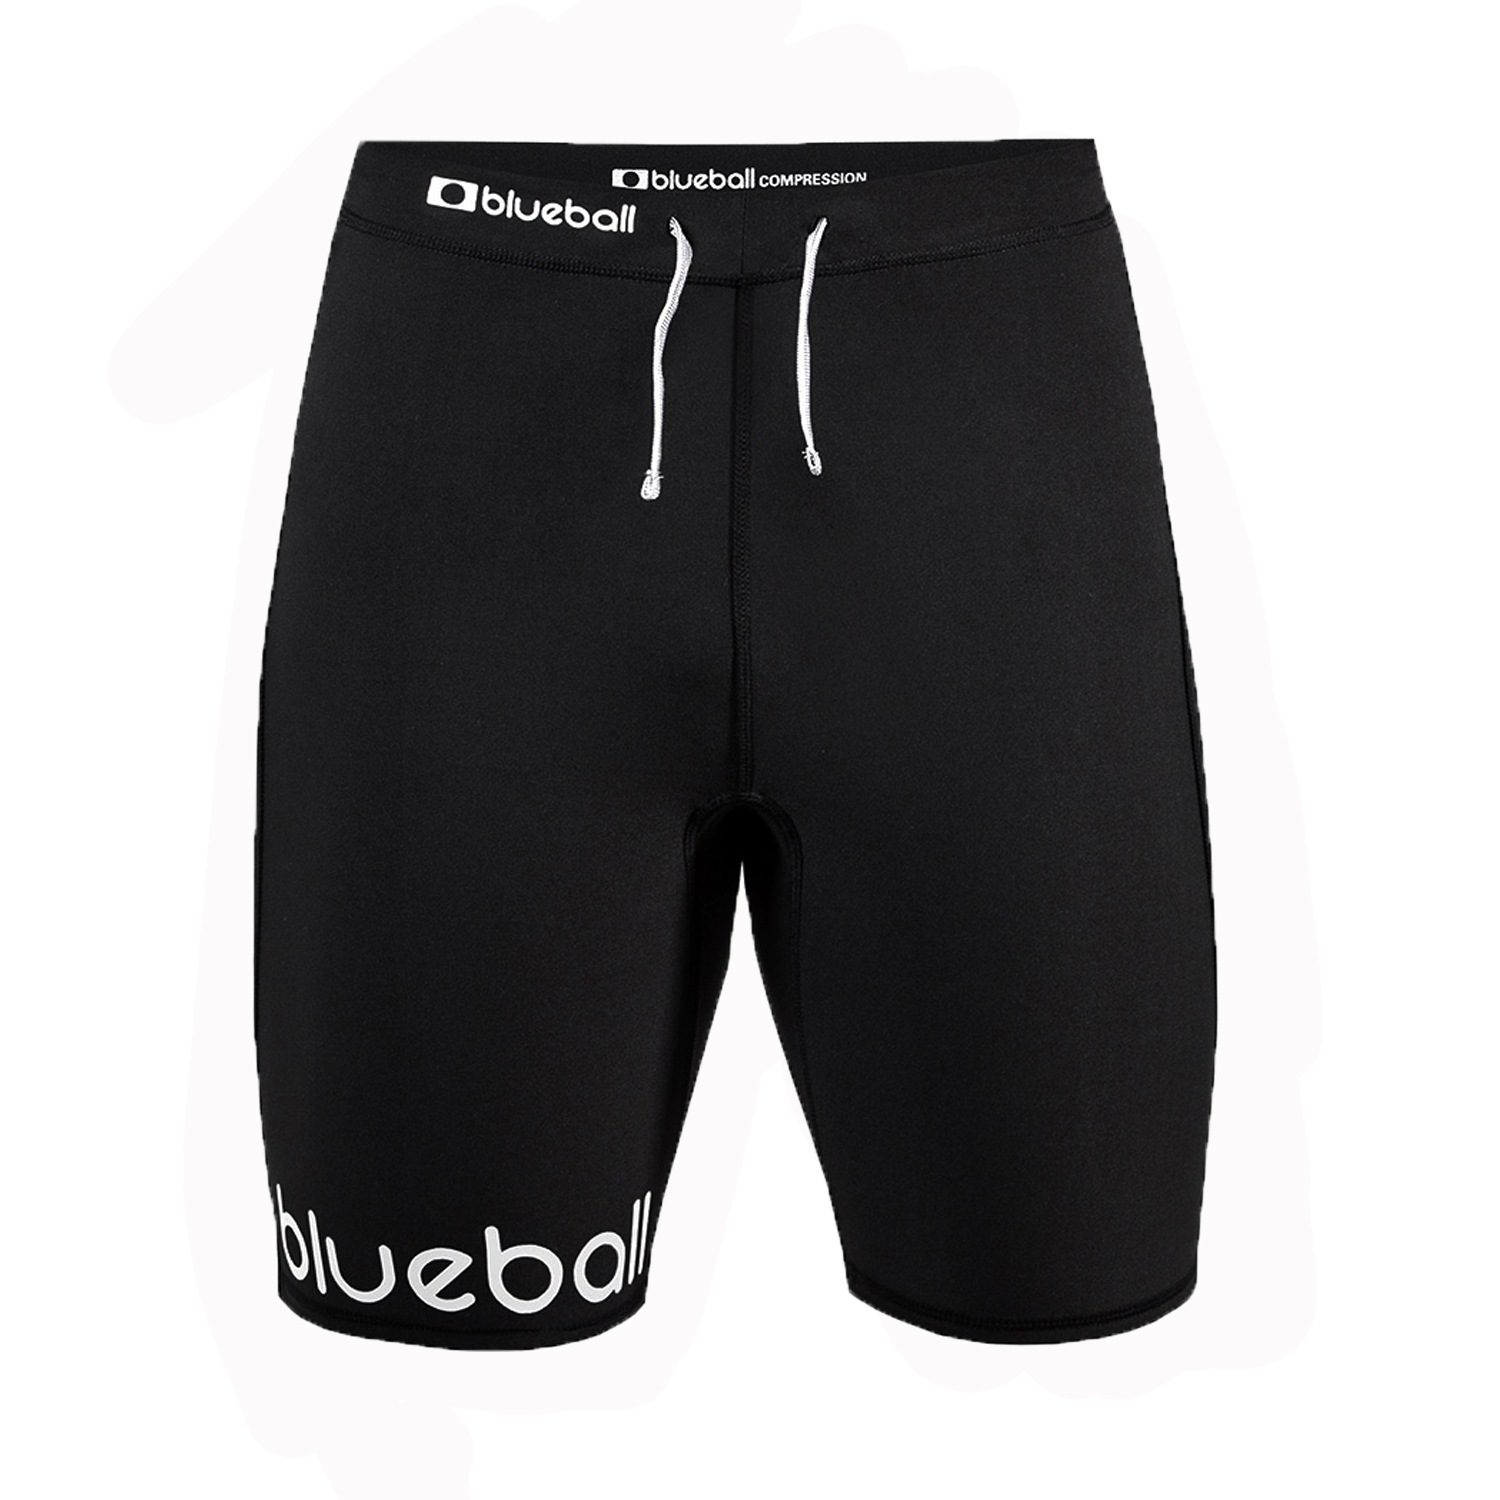 trail running compression short pants for men